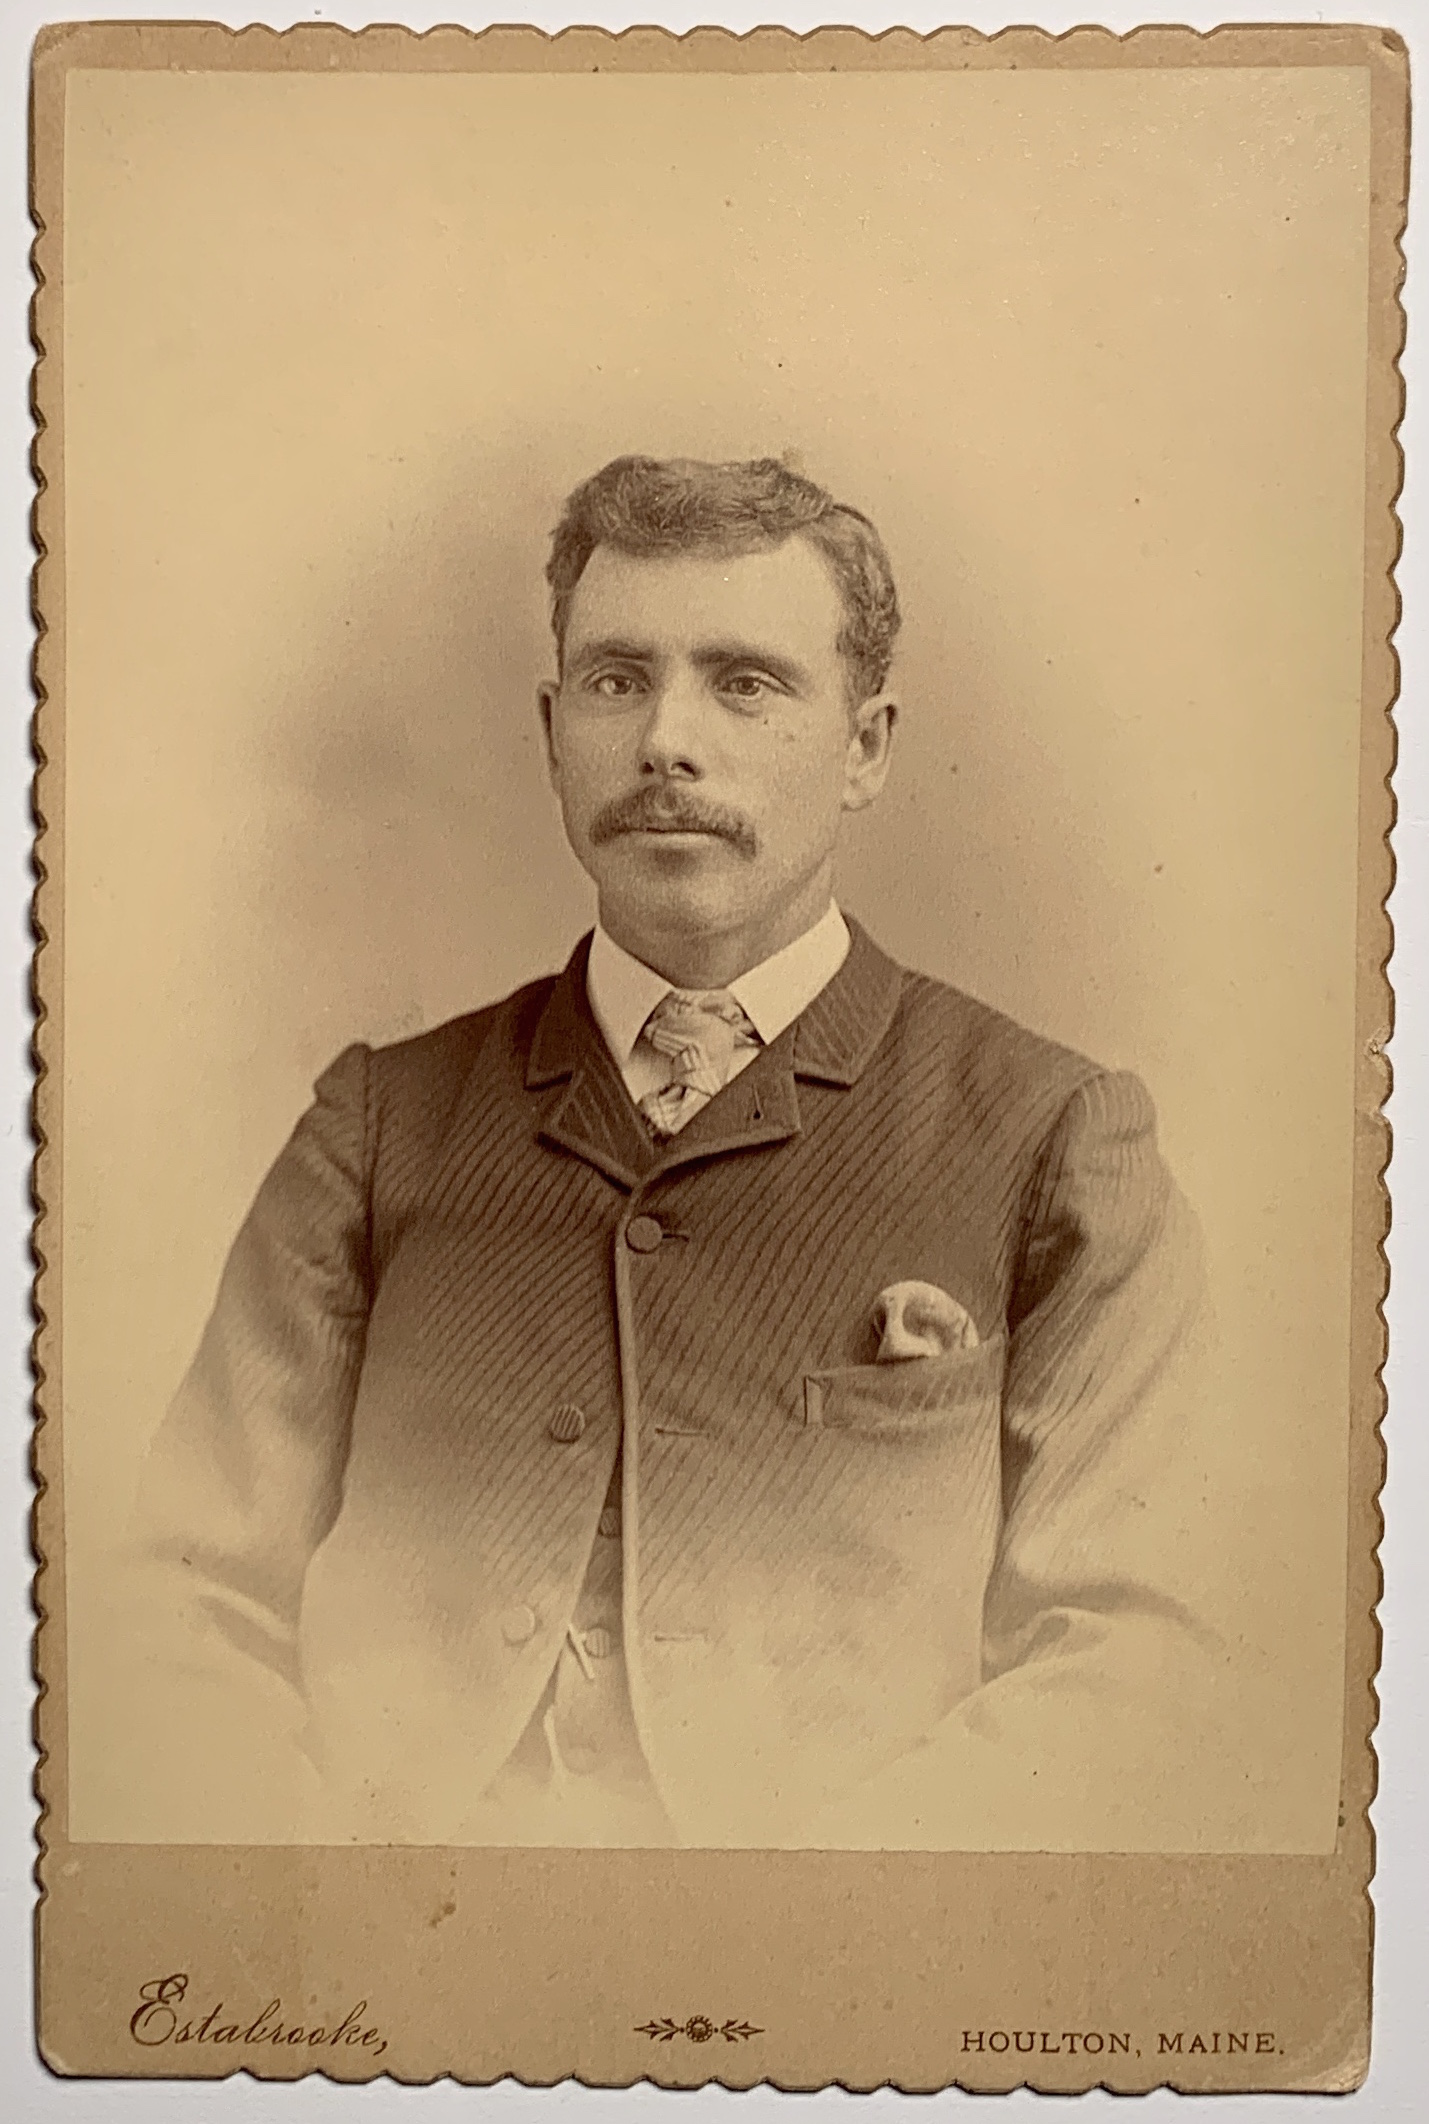 19th century cabinet card portrait of man from Maine.